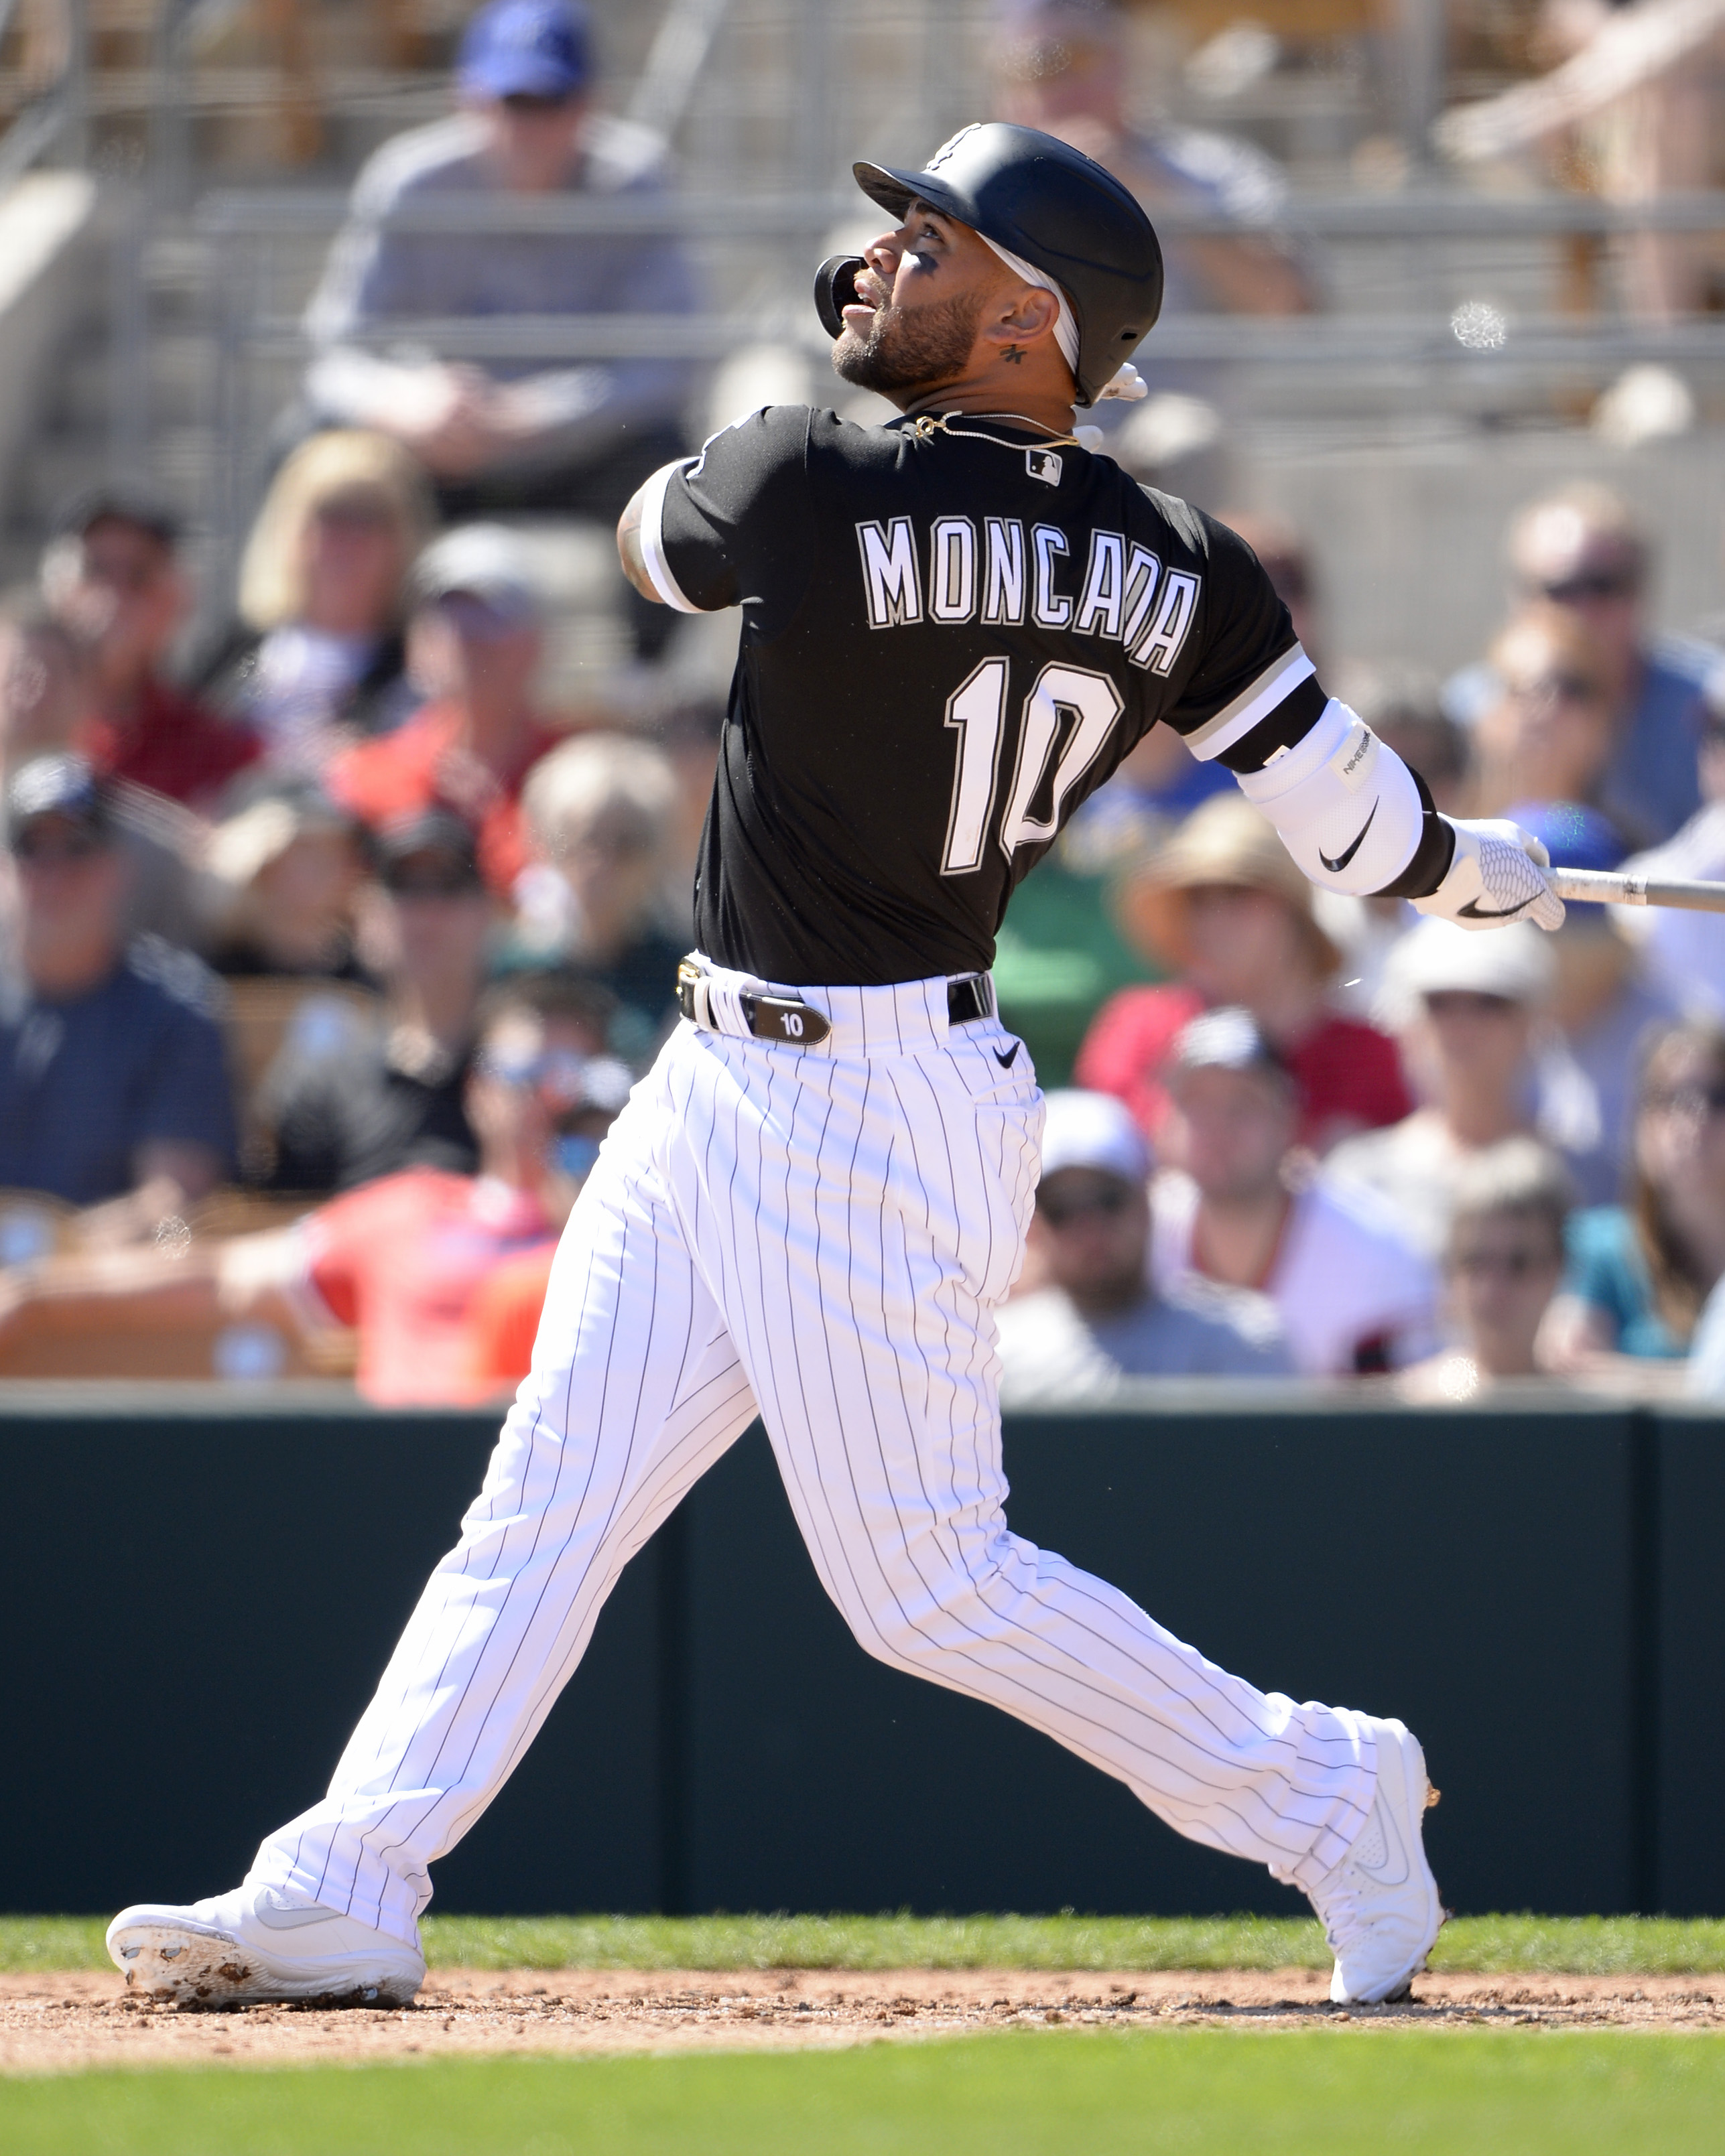 Yoan Moncada #10 of the Chicago White Sox bats against the Kansas City Royals on March 8, 2020 at Camelback Ranch in Glendale Arizona.